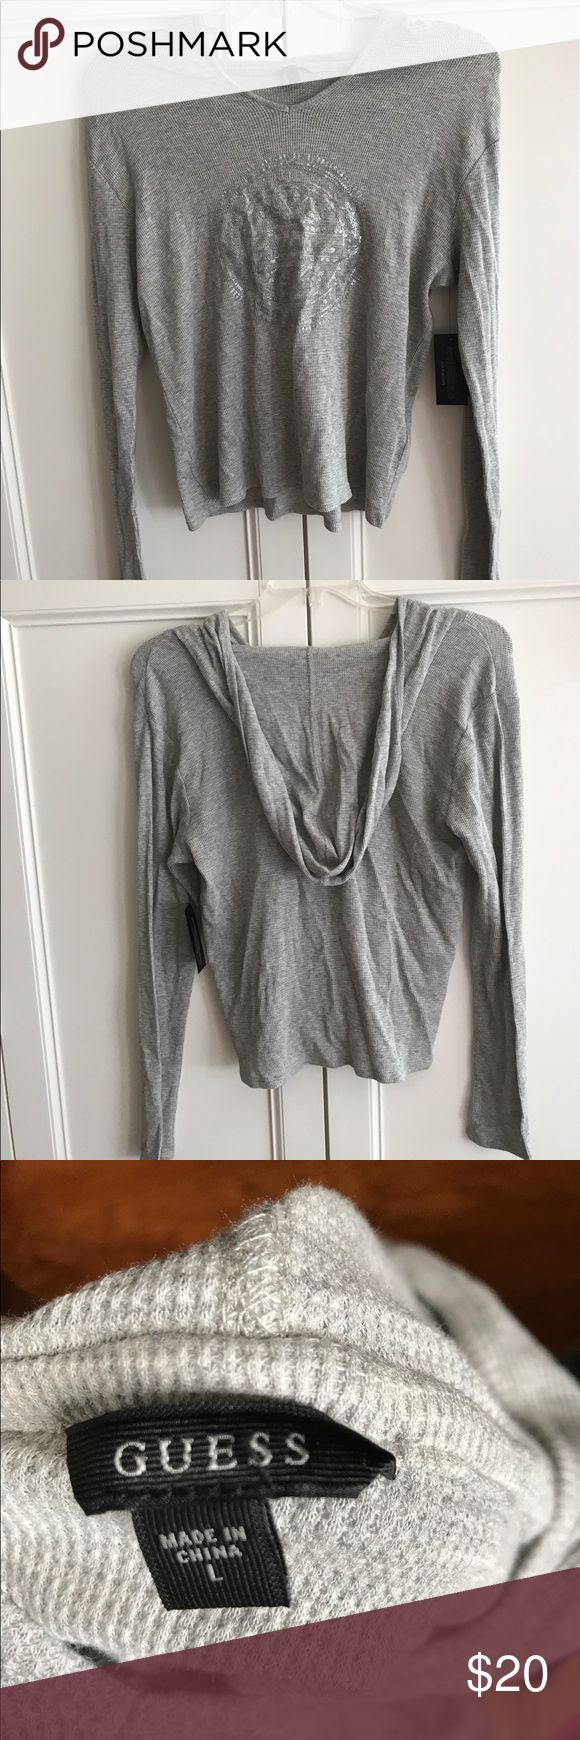 Guess hoodie Grey and silver hoodie never worn with tags Guess Sweaters